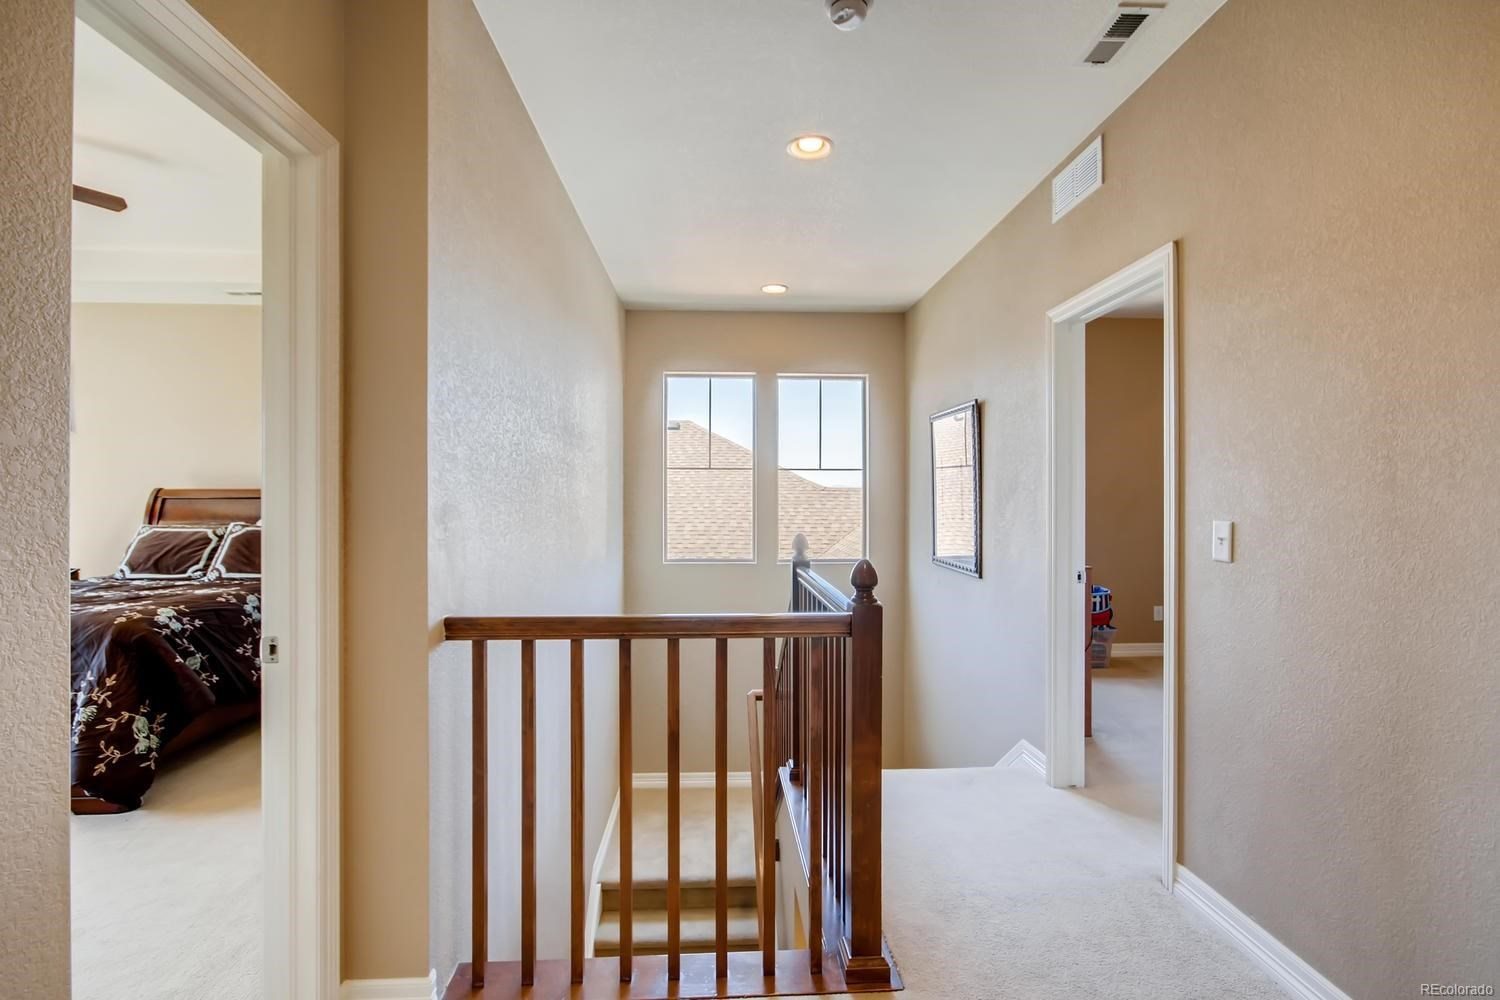 MLS# 4445367 - 28 - 15795 Savory Circle, Parker, CO 80134